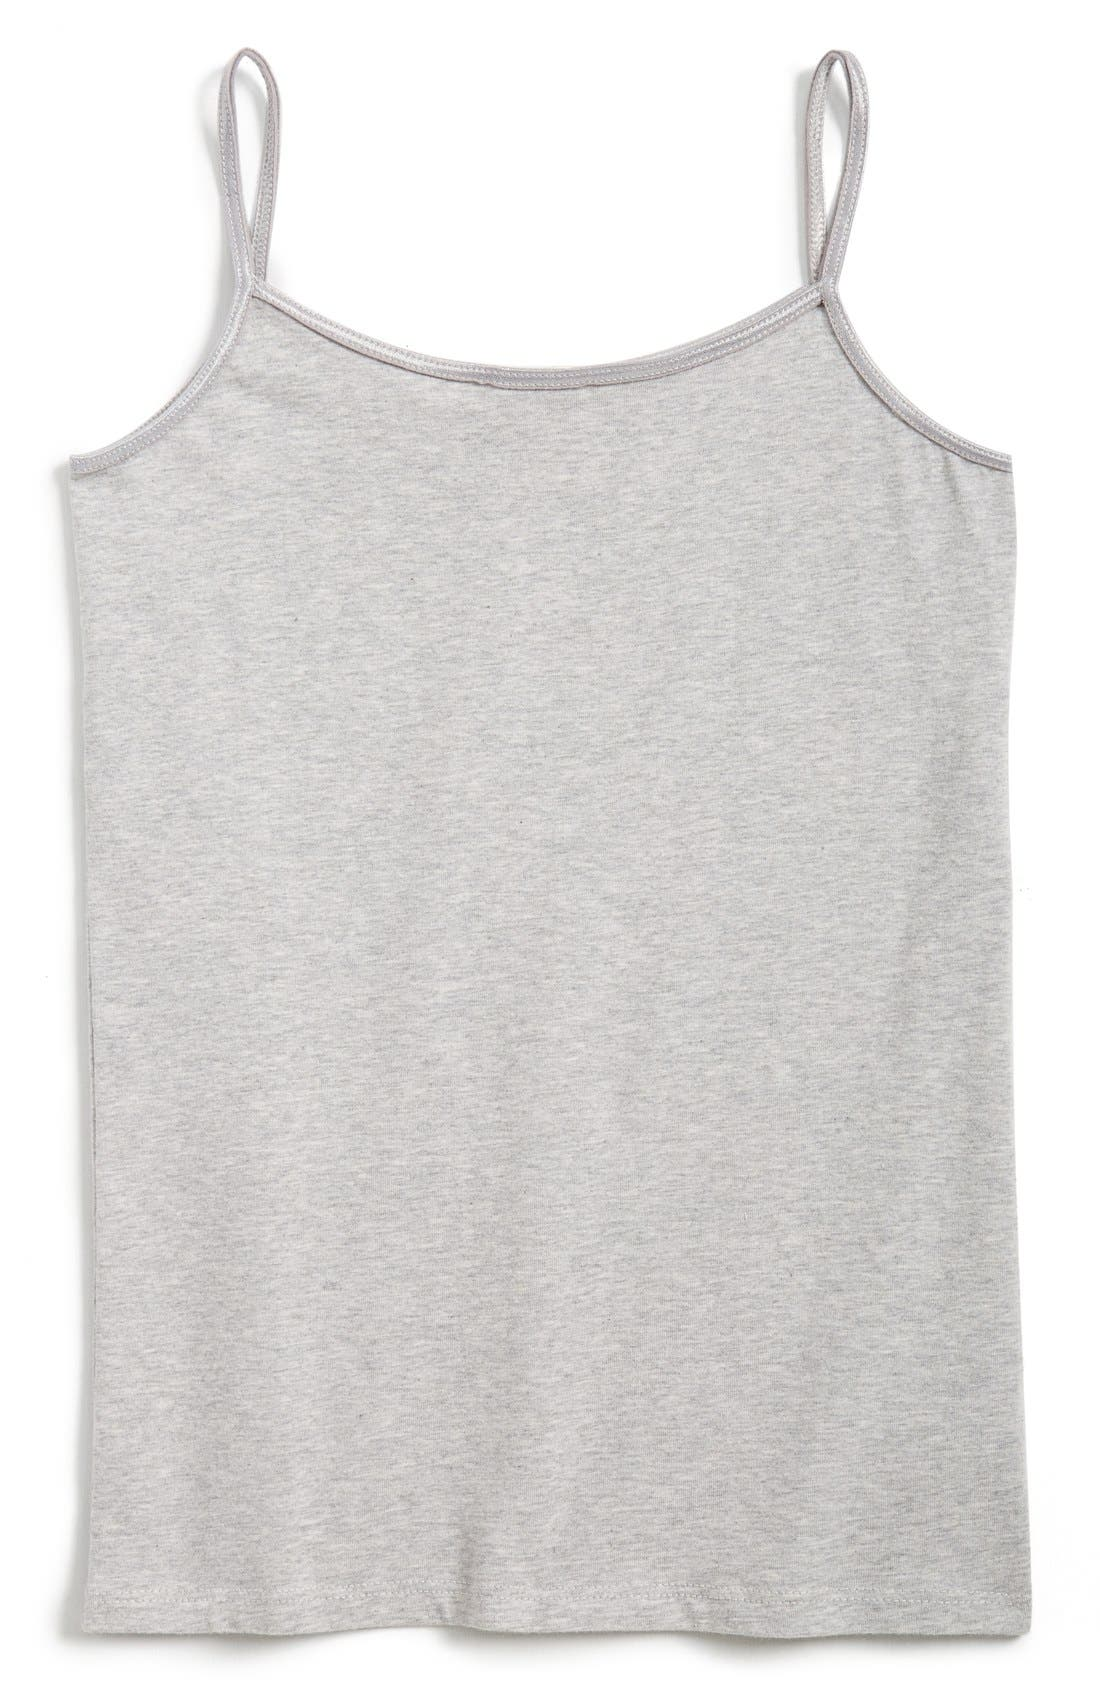 Alternate Image 1 Selected - Tucker + Tate Heathered Long Camisole (Little Girls & Big Girls)